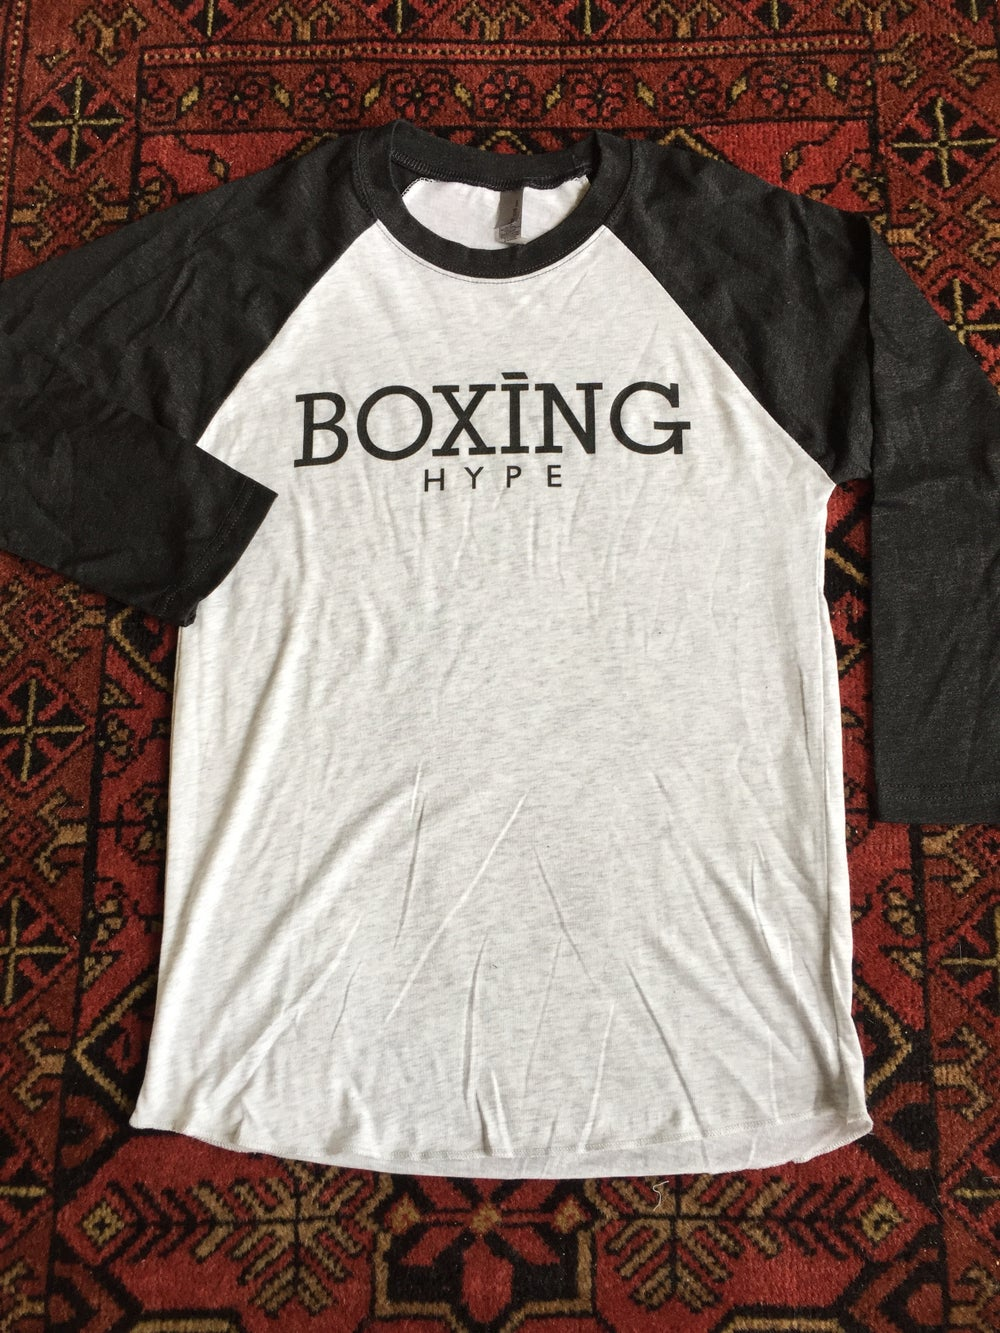 Image of Mens BoxingHype 3/4 Baseball Tees (2 colors available)